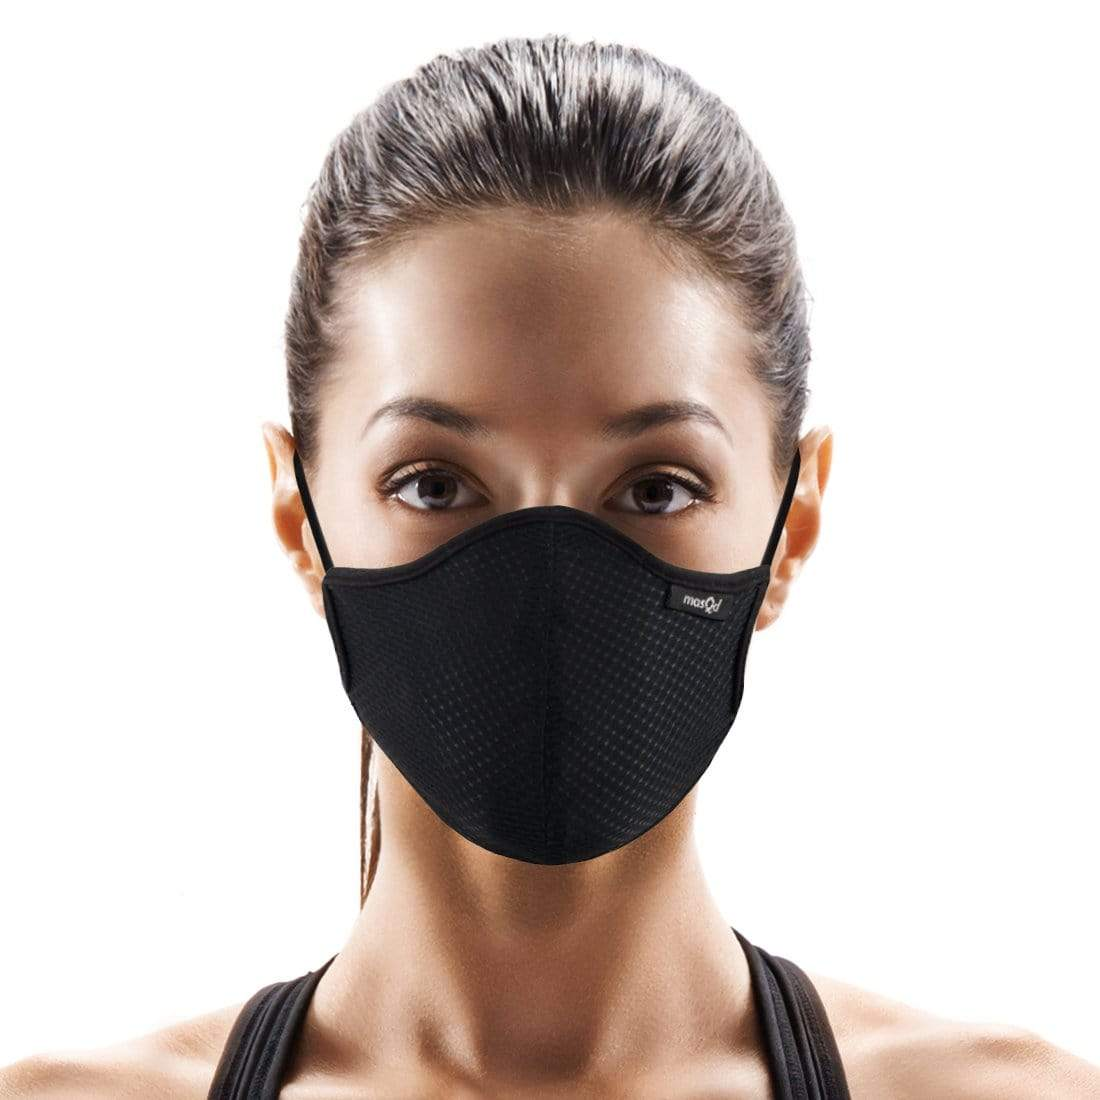 Masqd Ultra Sport Mask on woman with brown hair